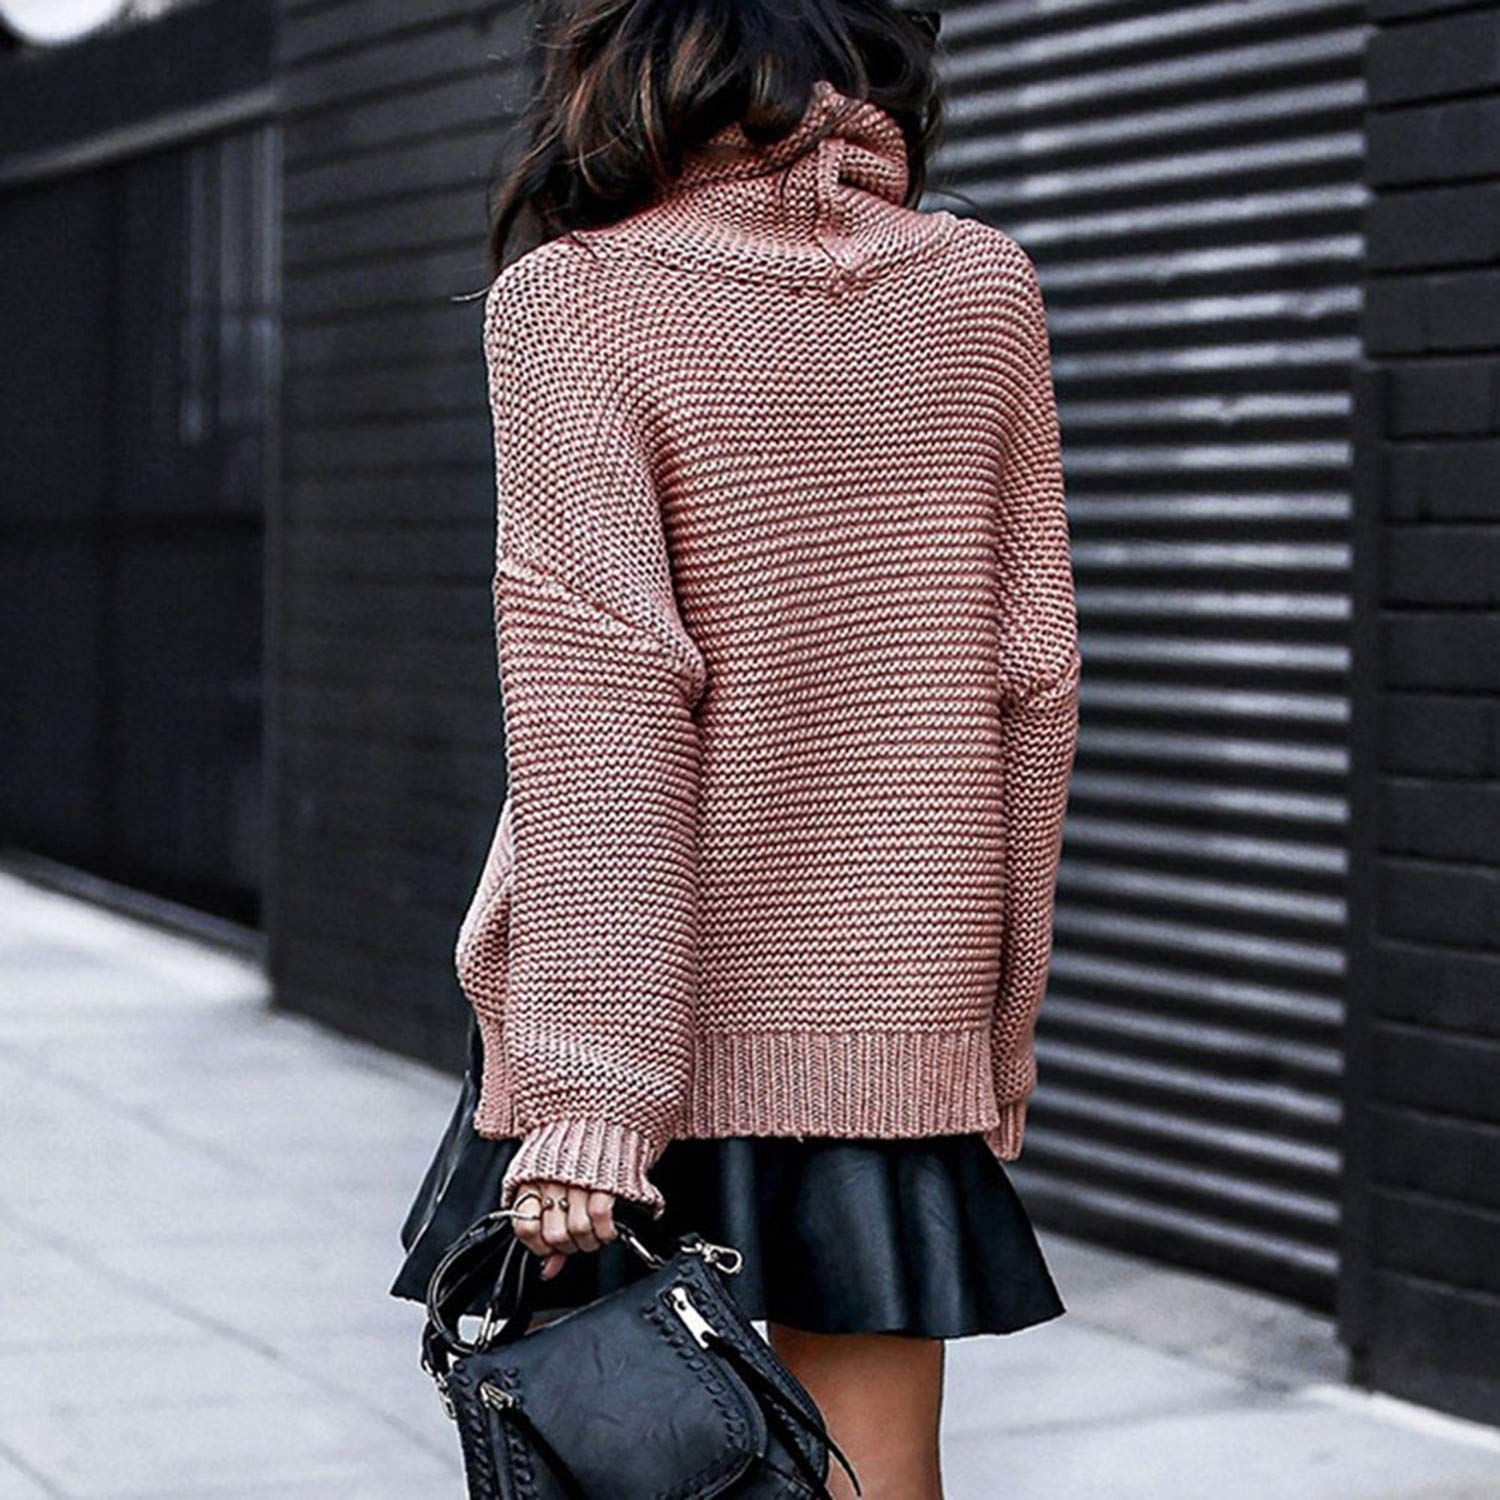 Cyose Fashion Turtleneck Sweater Women Pullovers and Sweater Female Knitted Sweater Women Loose Pullover Tops